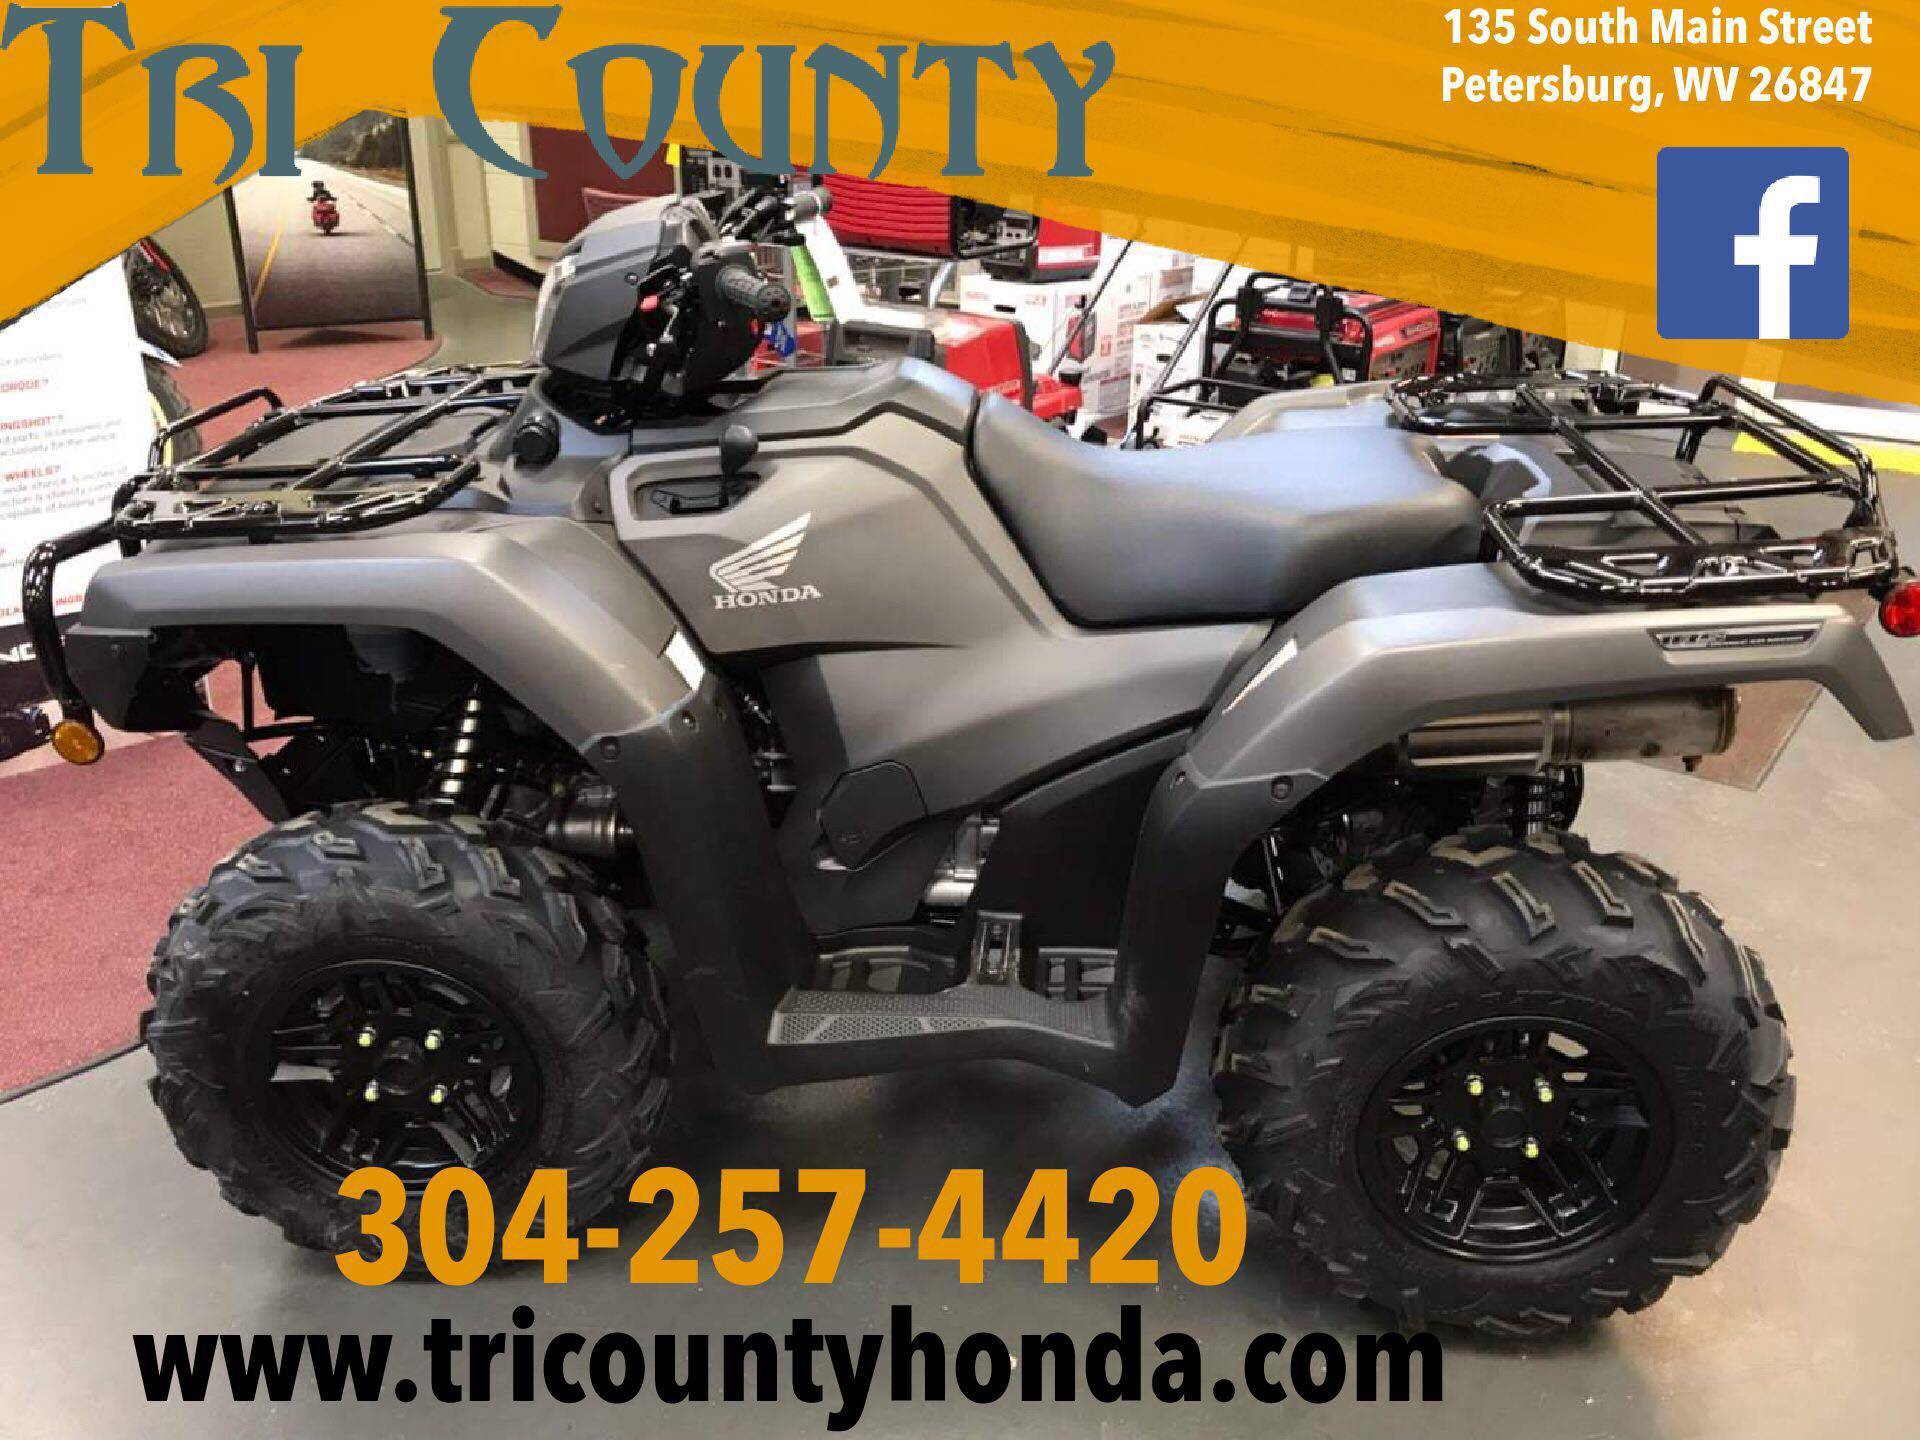 2019 Honda Fourtrax Foreman Rubicon 4x4 Automatic Dct Eps Deluxe In Petersburg West Virginia